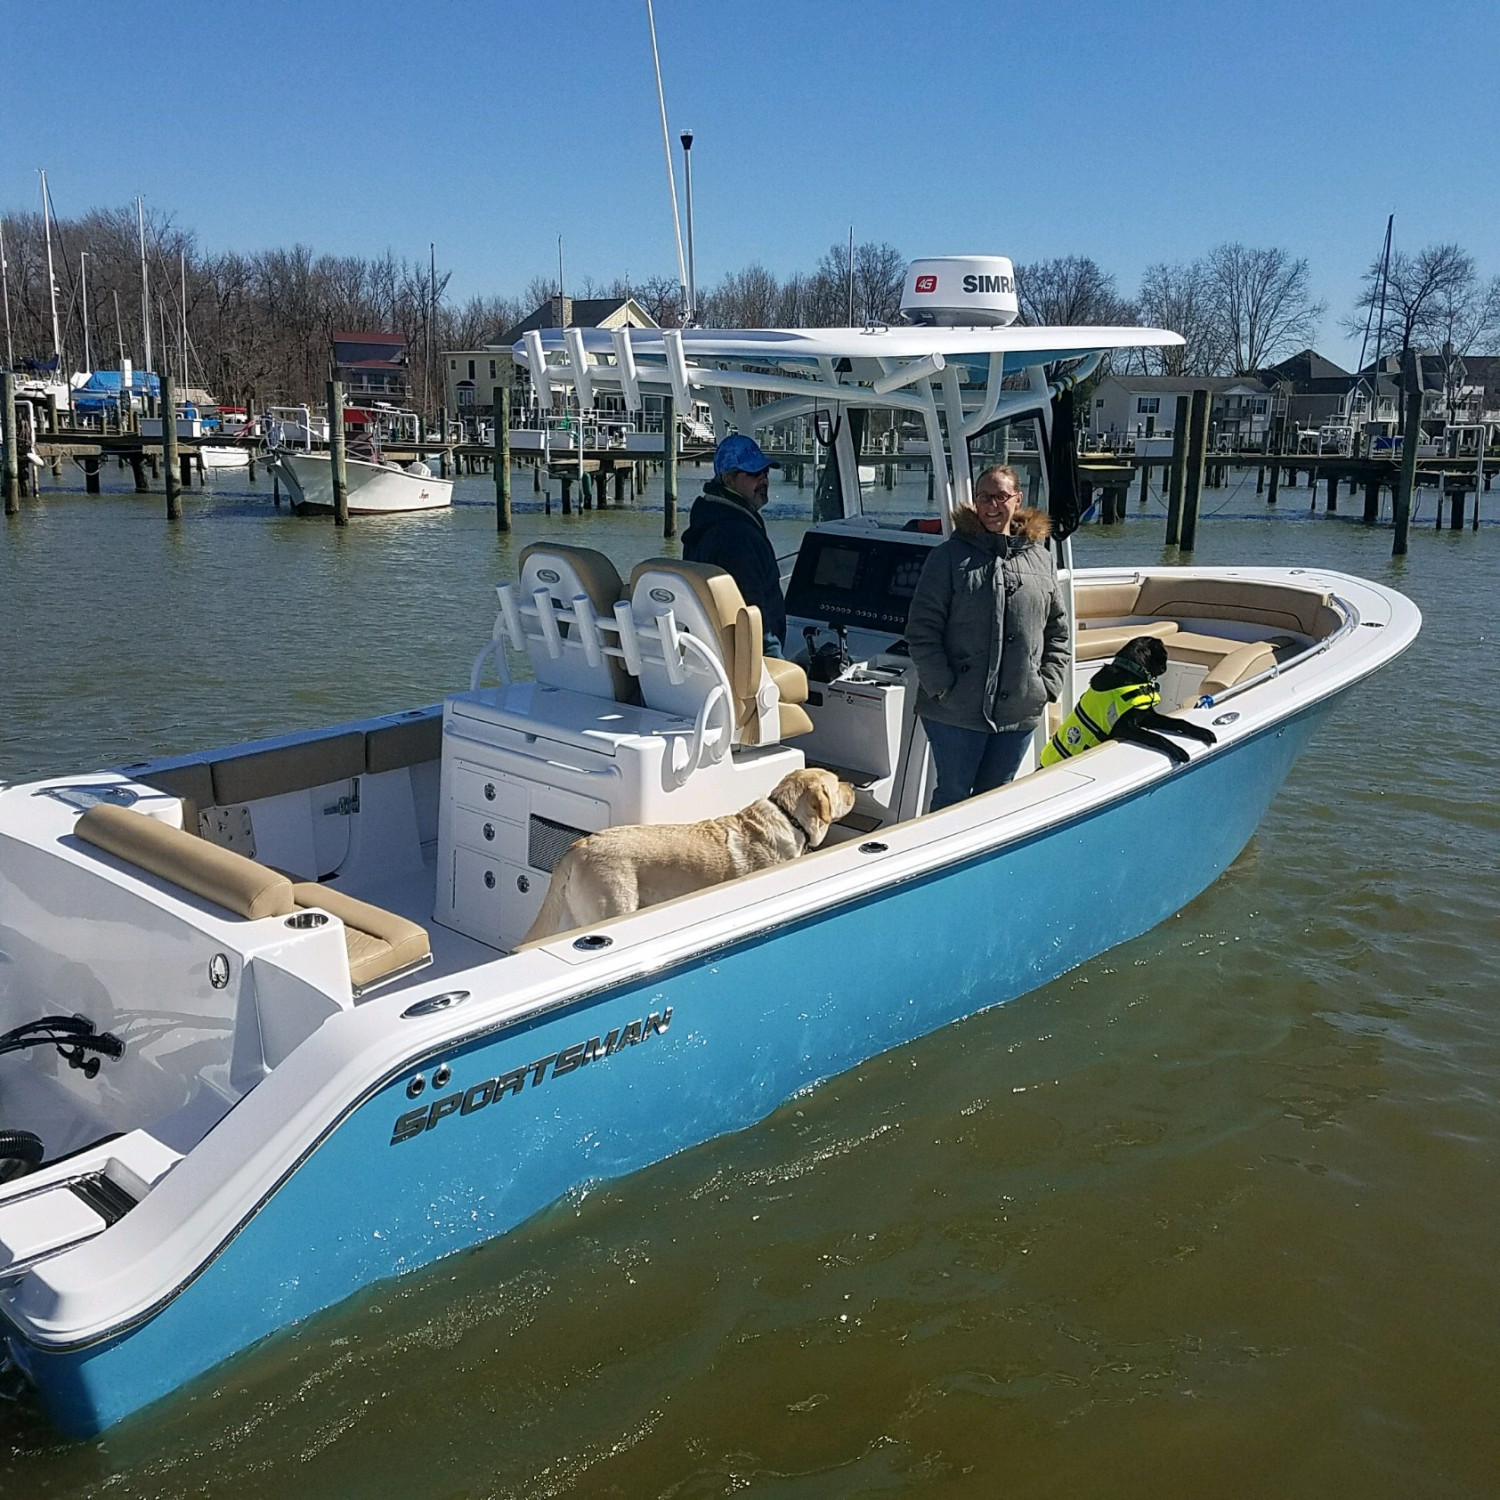 Title: Maybe chilly but we are boating. - On board their Sportsman Open 282 Center Console - Location: Middle river maryland. Participating in the Photo Contest #SportsmanApril2018